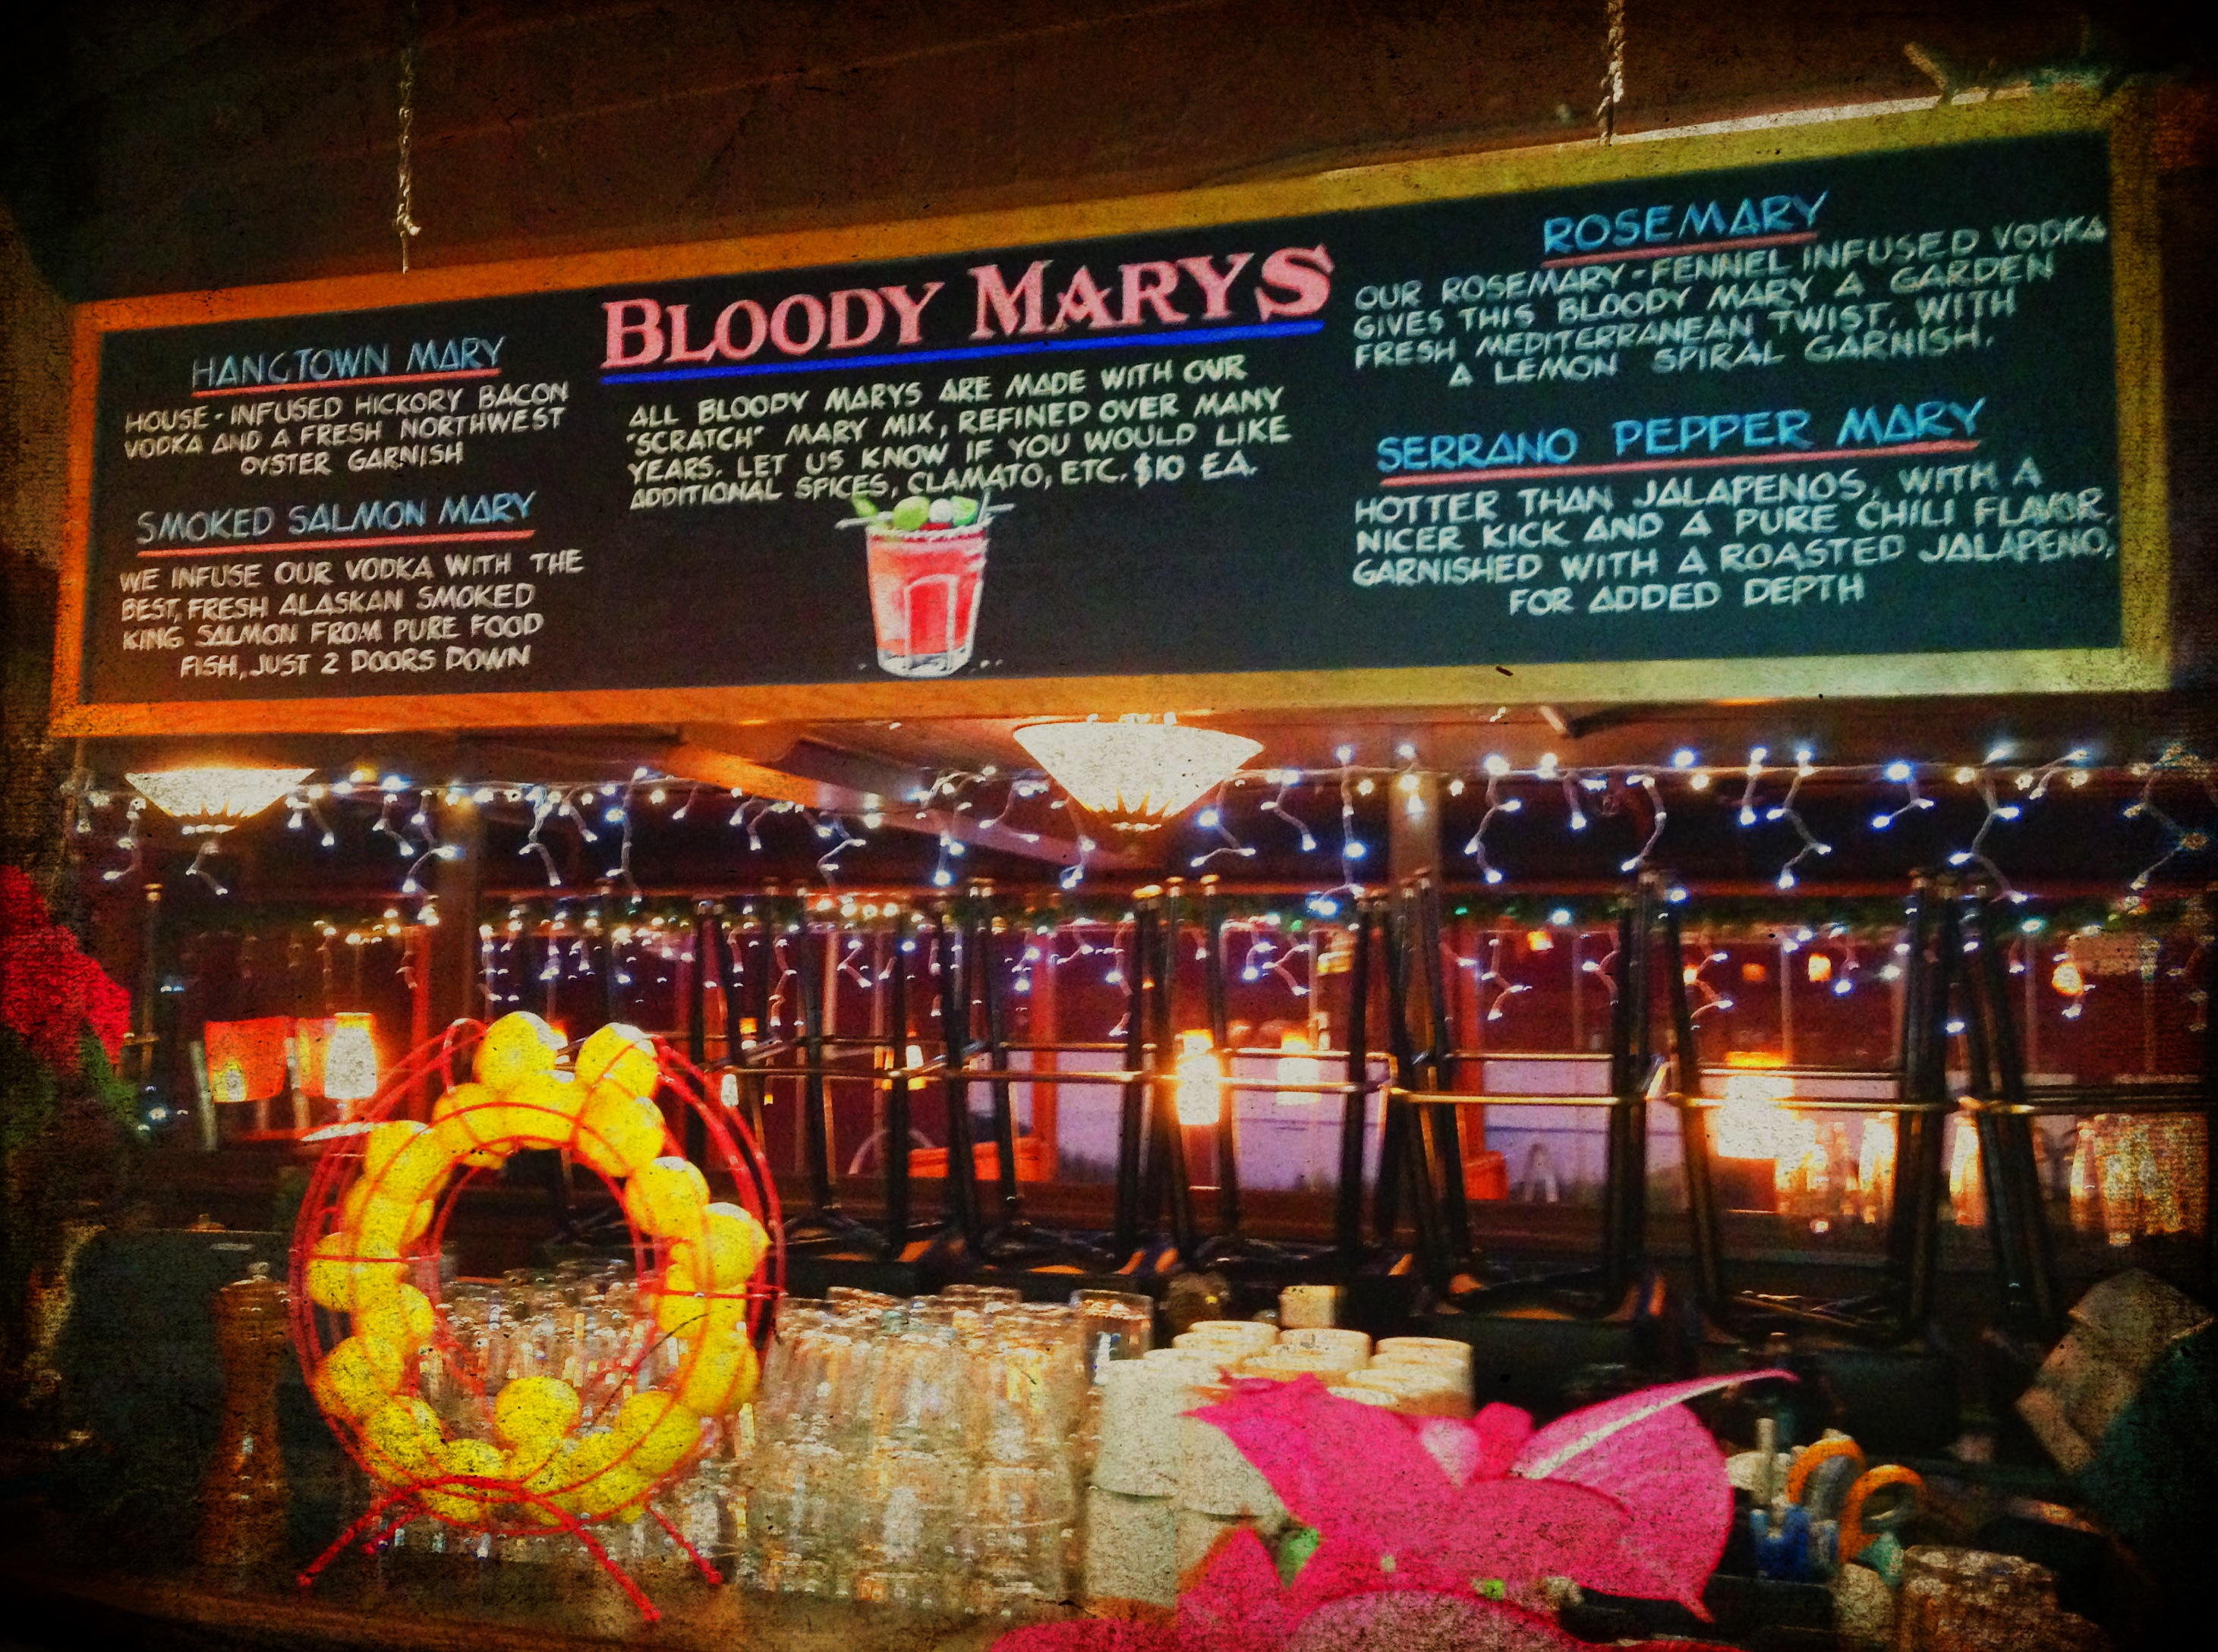 BLOODY MARY BOARD